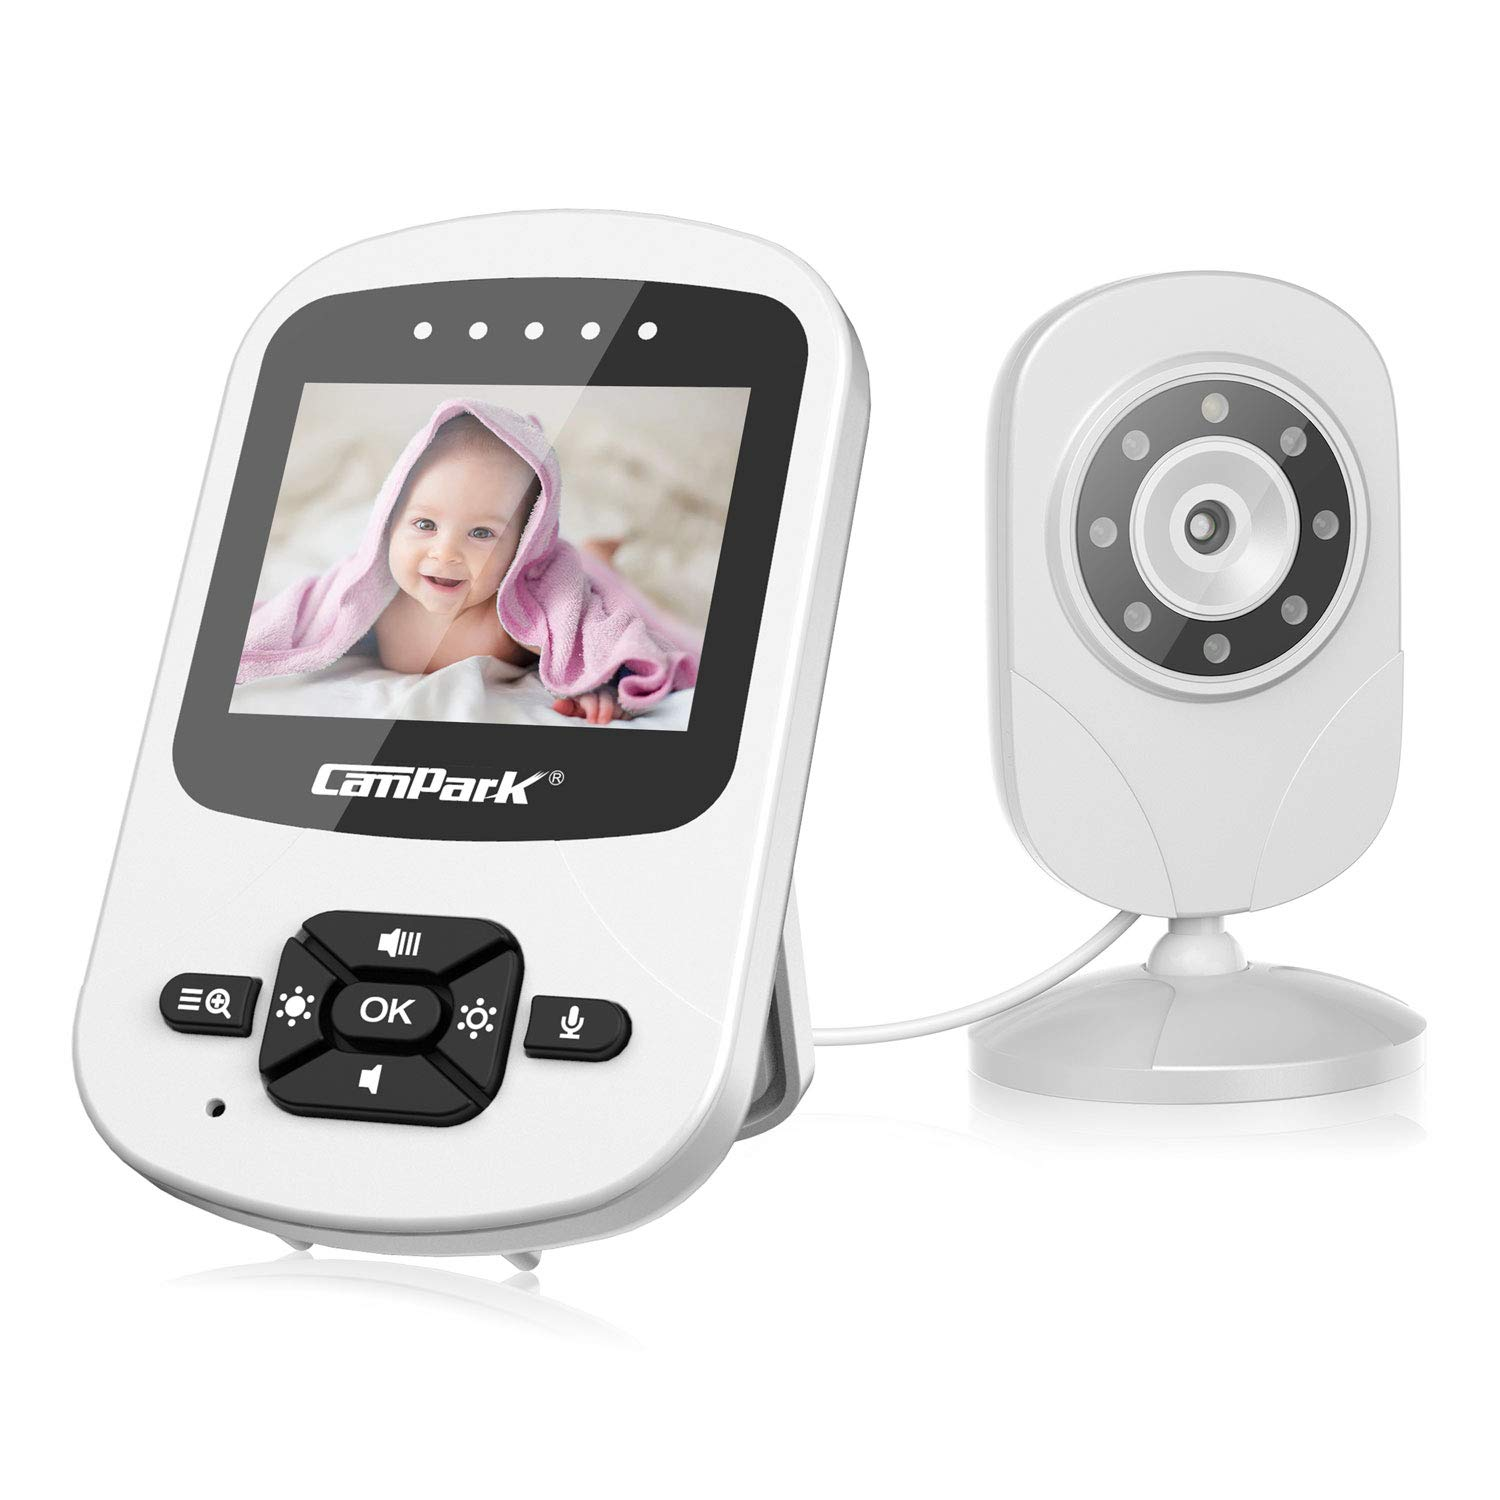 """Campark Video Baby Monitor with Camera Portable Wireless Digital Camera with Infrared Night Vision, 2-Way Talk, 2.4"""" LCD 2.4GHz, Temperature Sensor, VOX, Support Multi-Camera"""